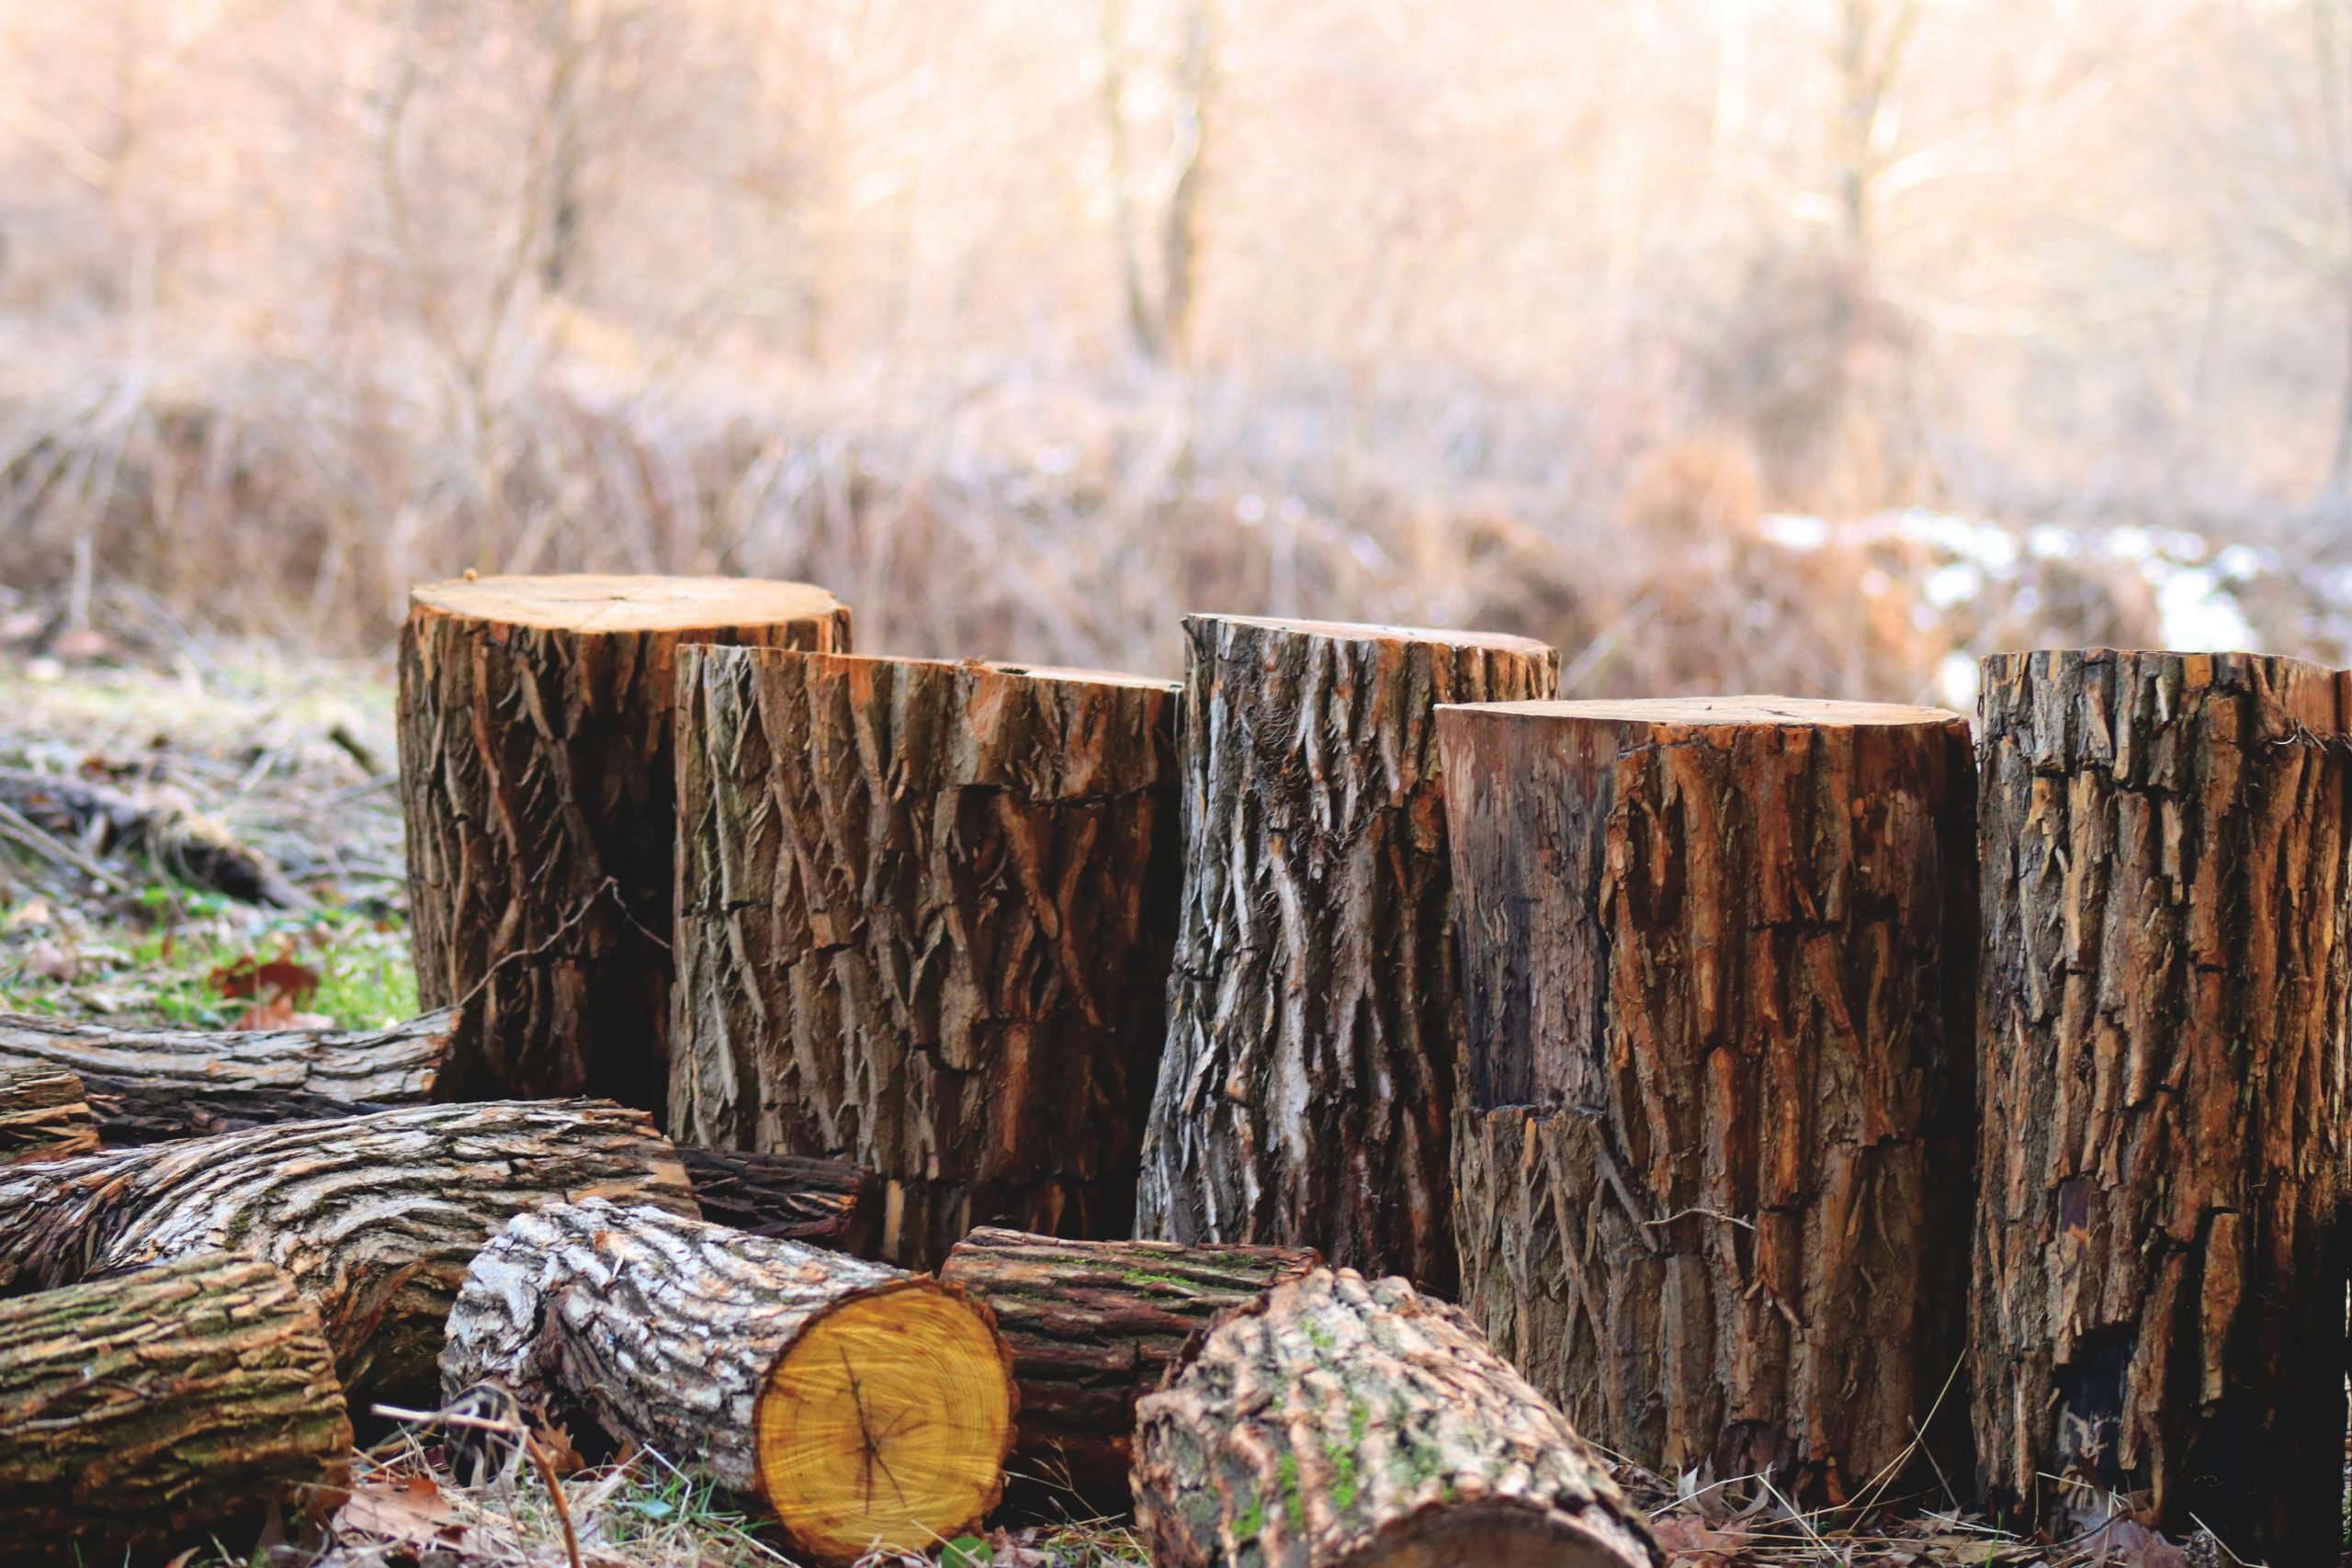 depth-of-field-photography-of-brown-tree-logs-923167